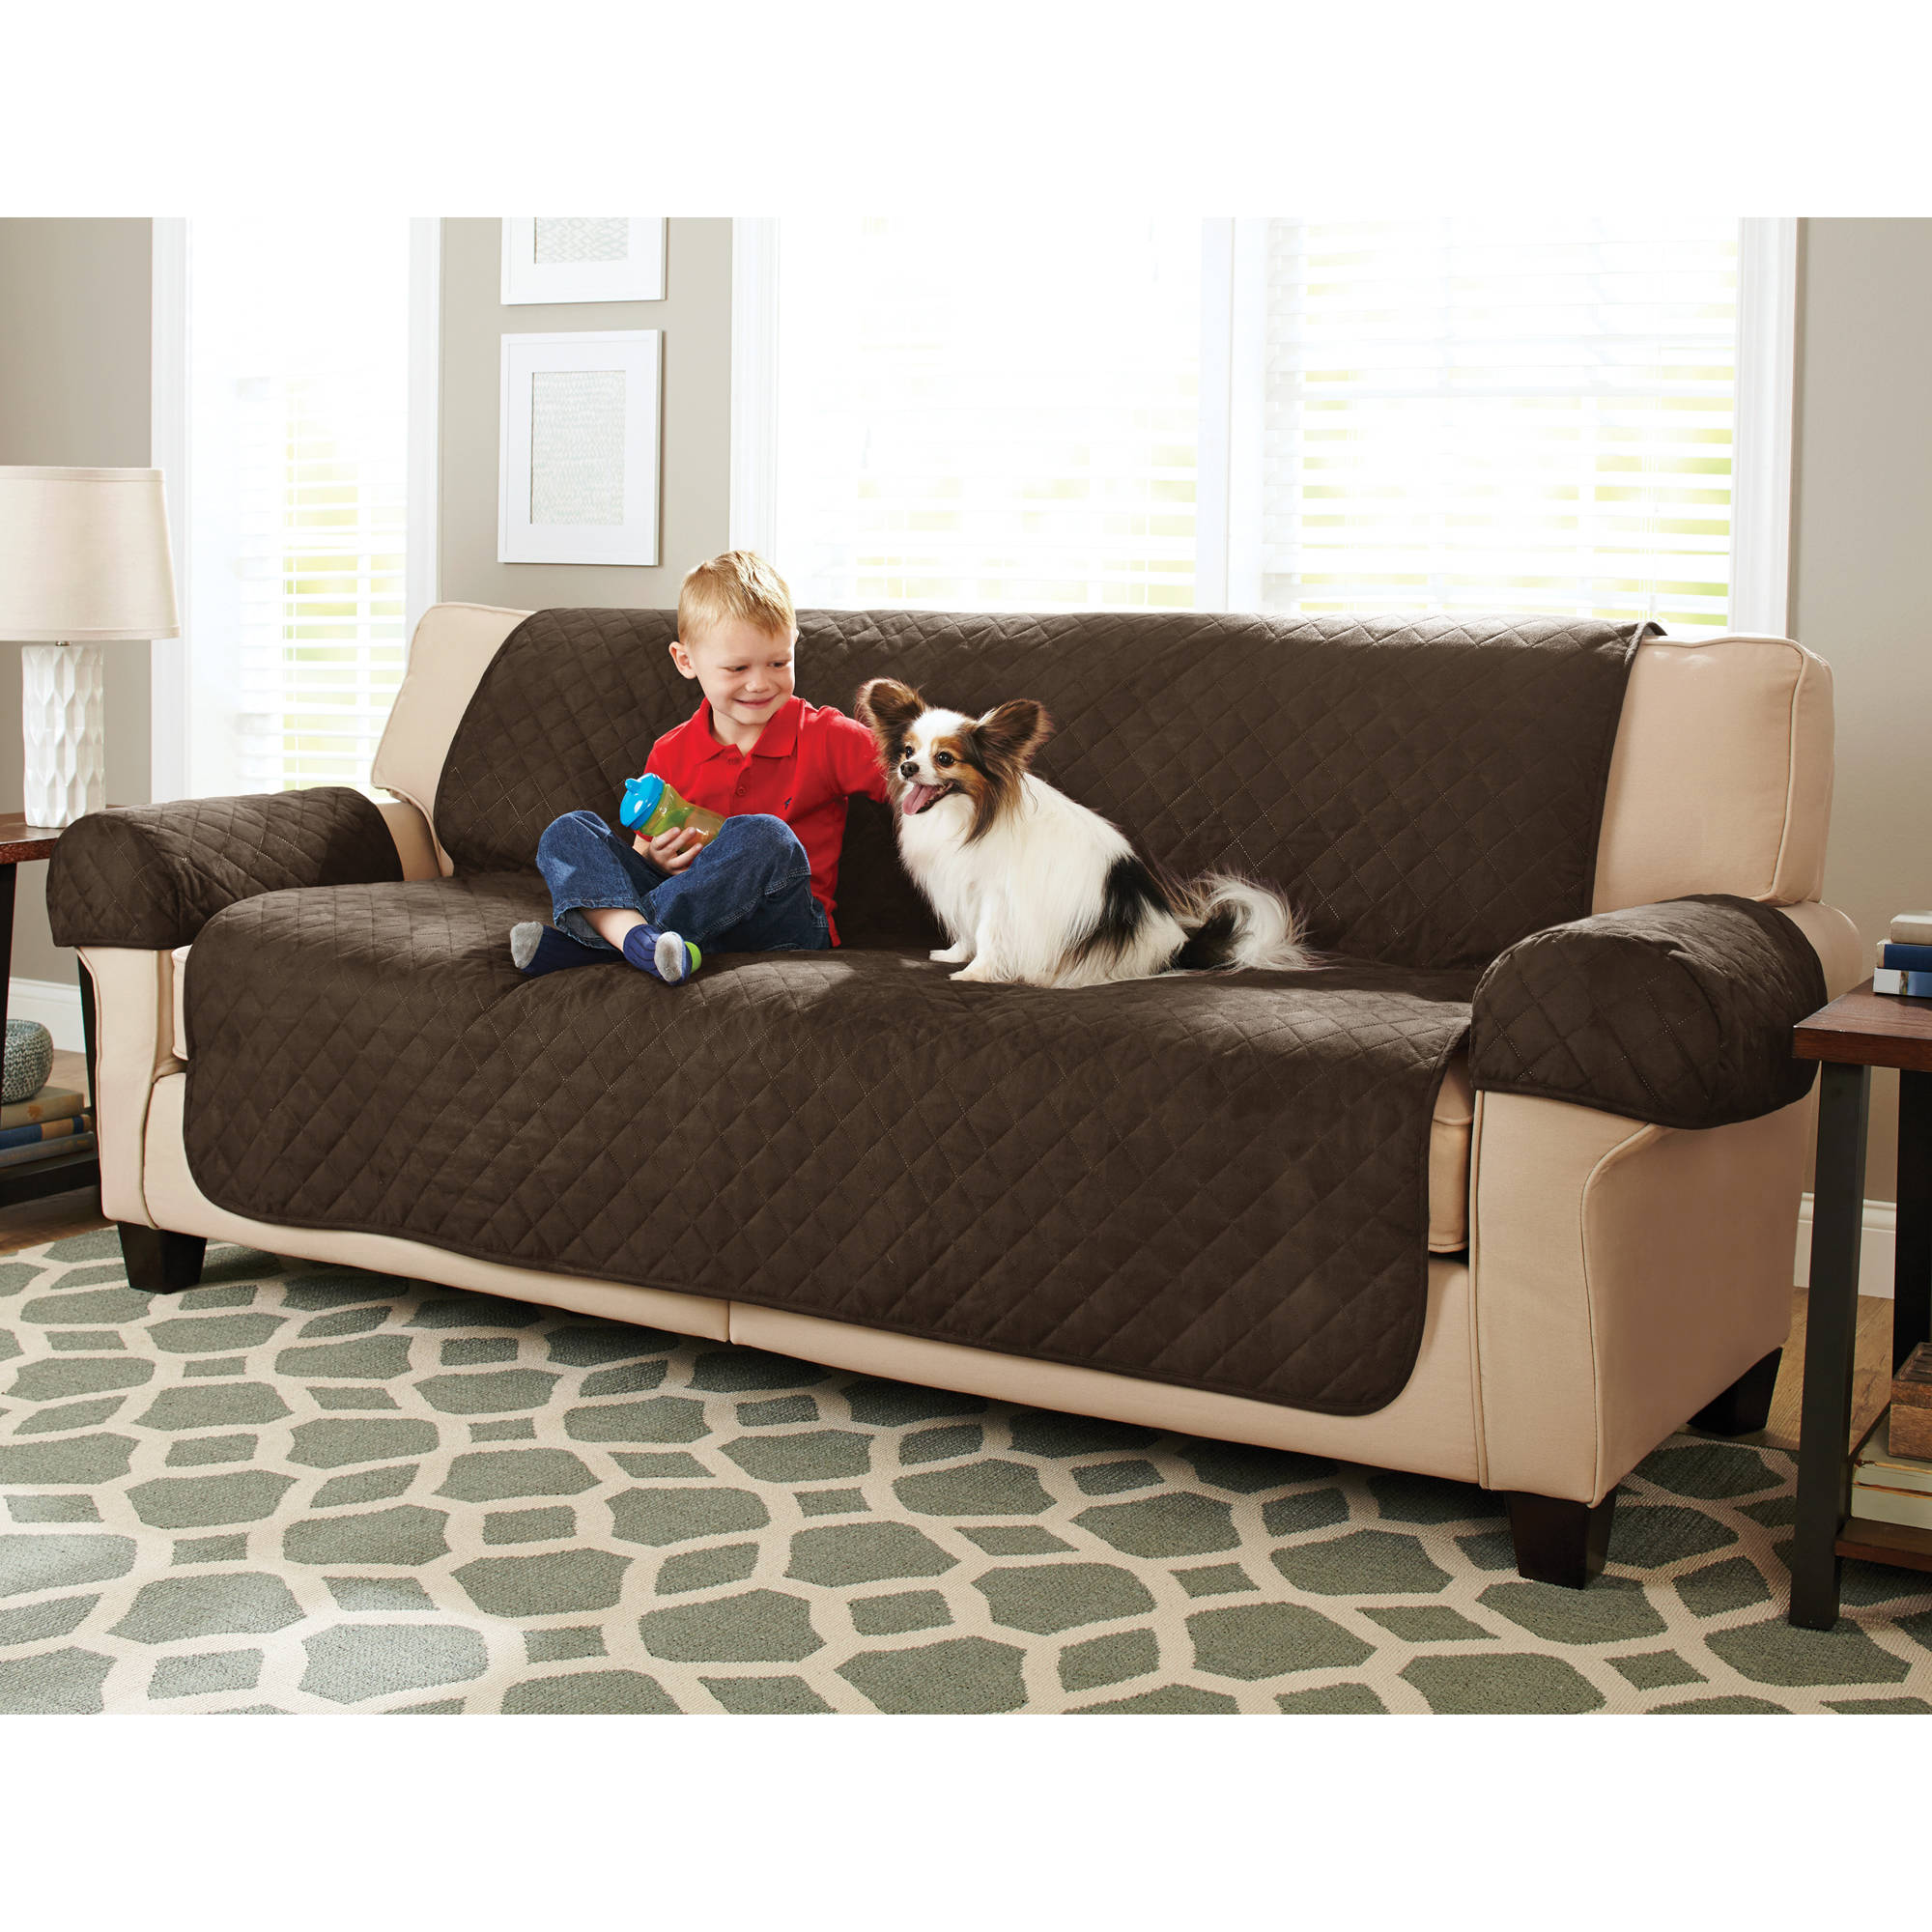 Better Homes And Gardens Waterproof Non Slip Faux Suede Pet/Furniture Sofa  Cover   Walmart.com